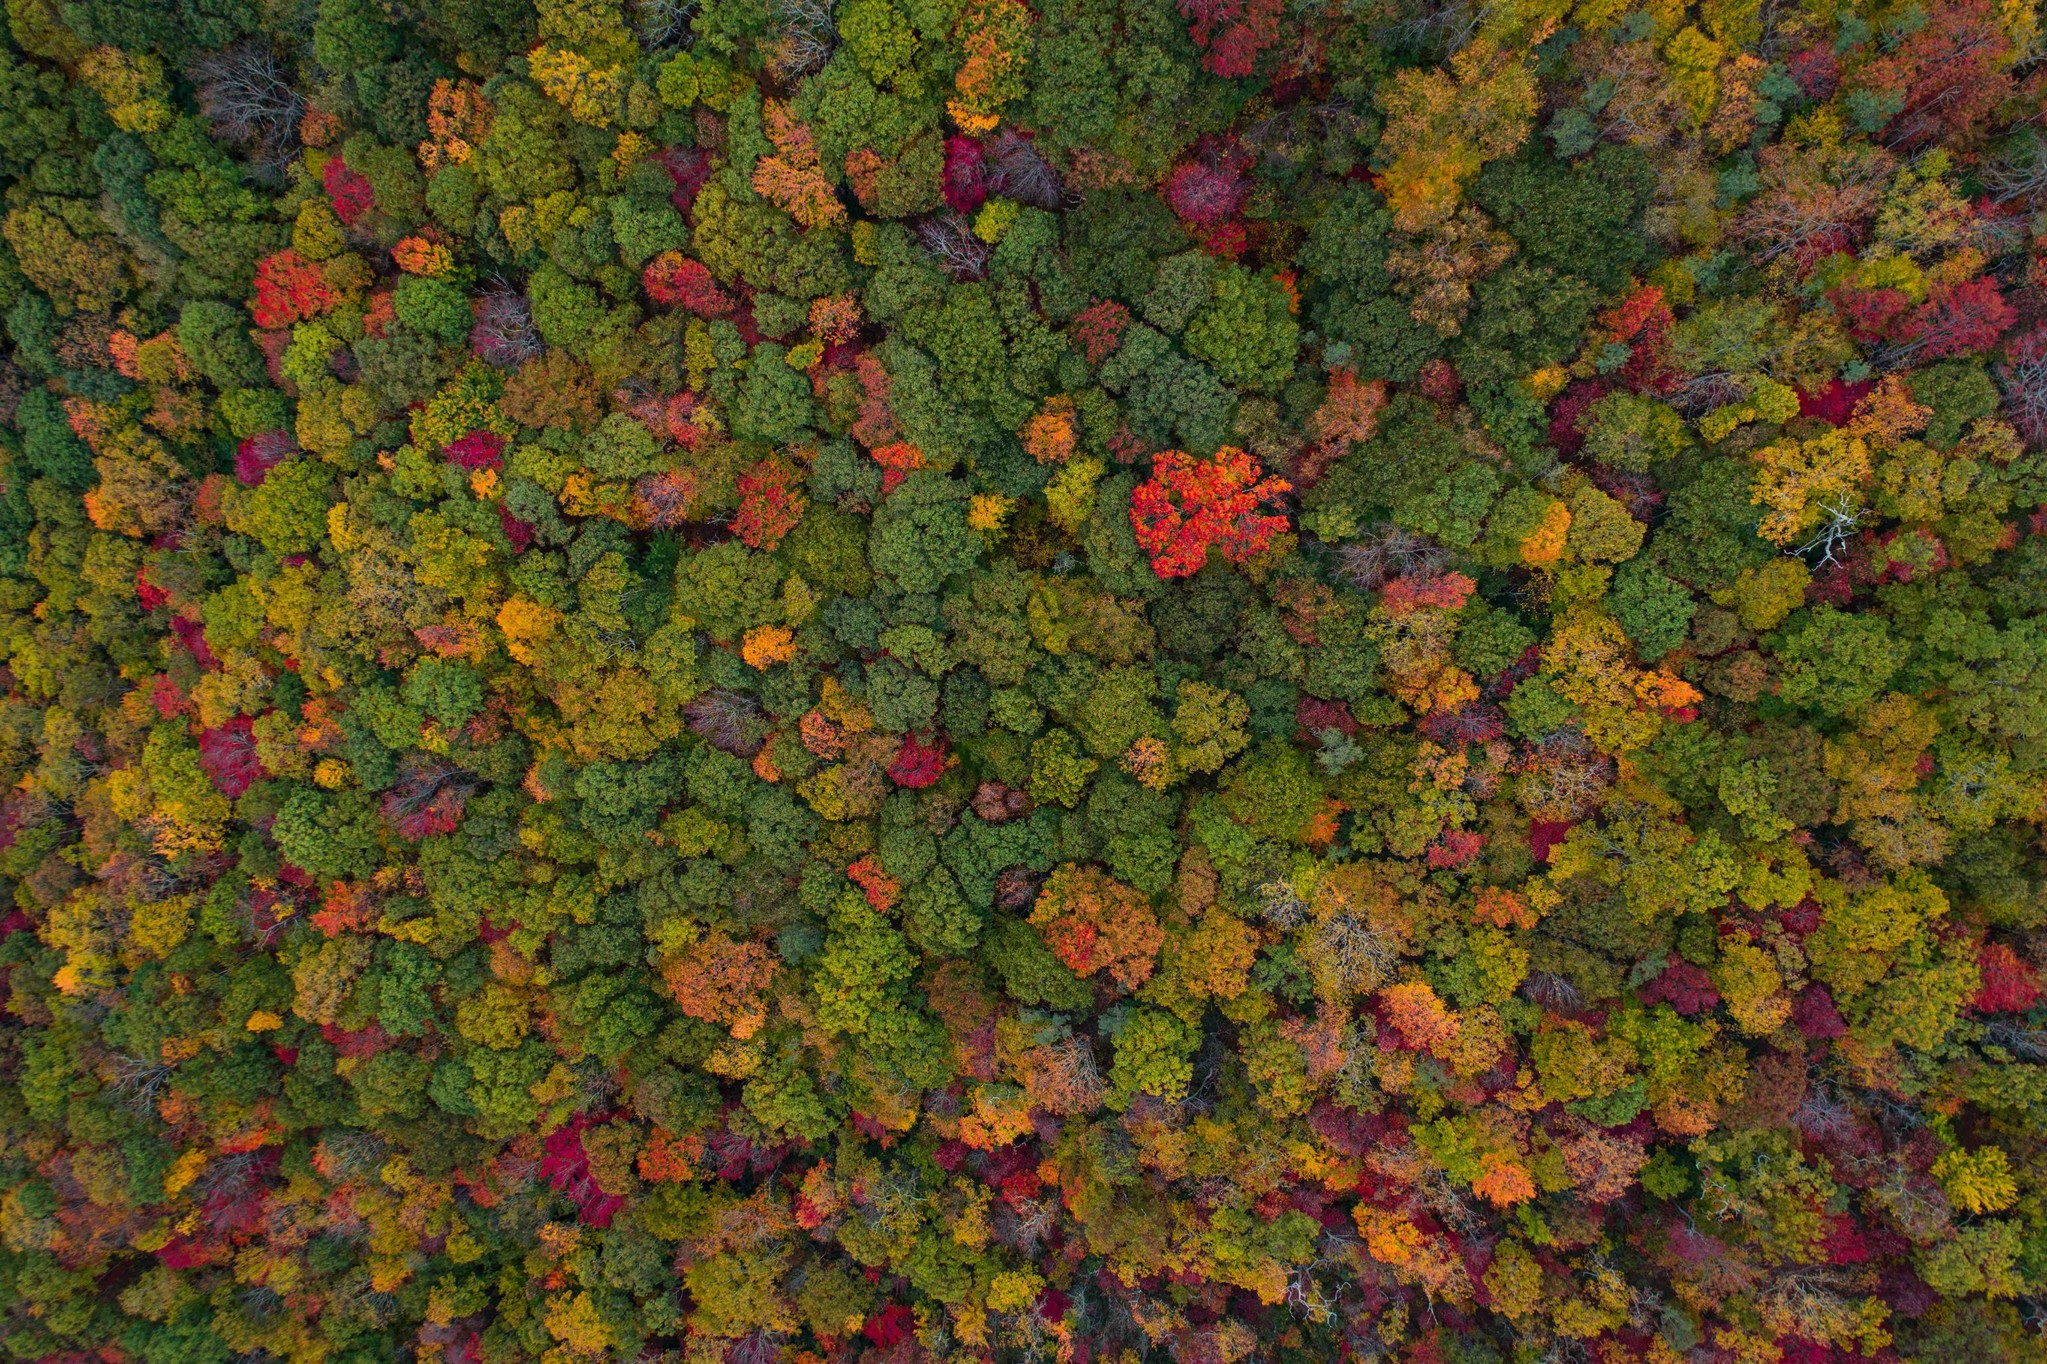 Bird's View of a Forest